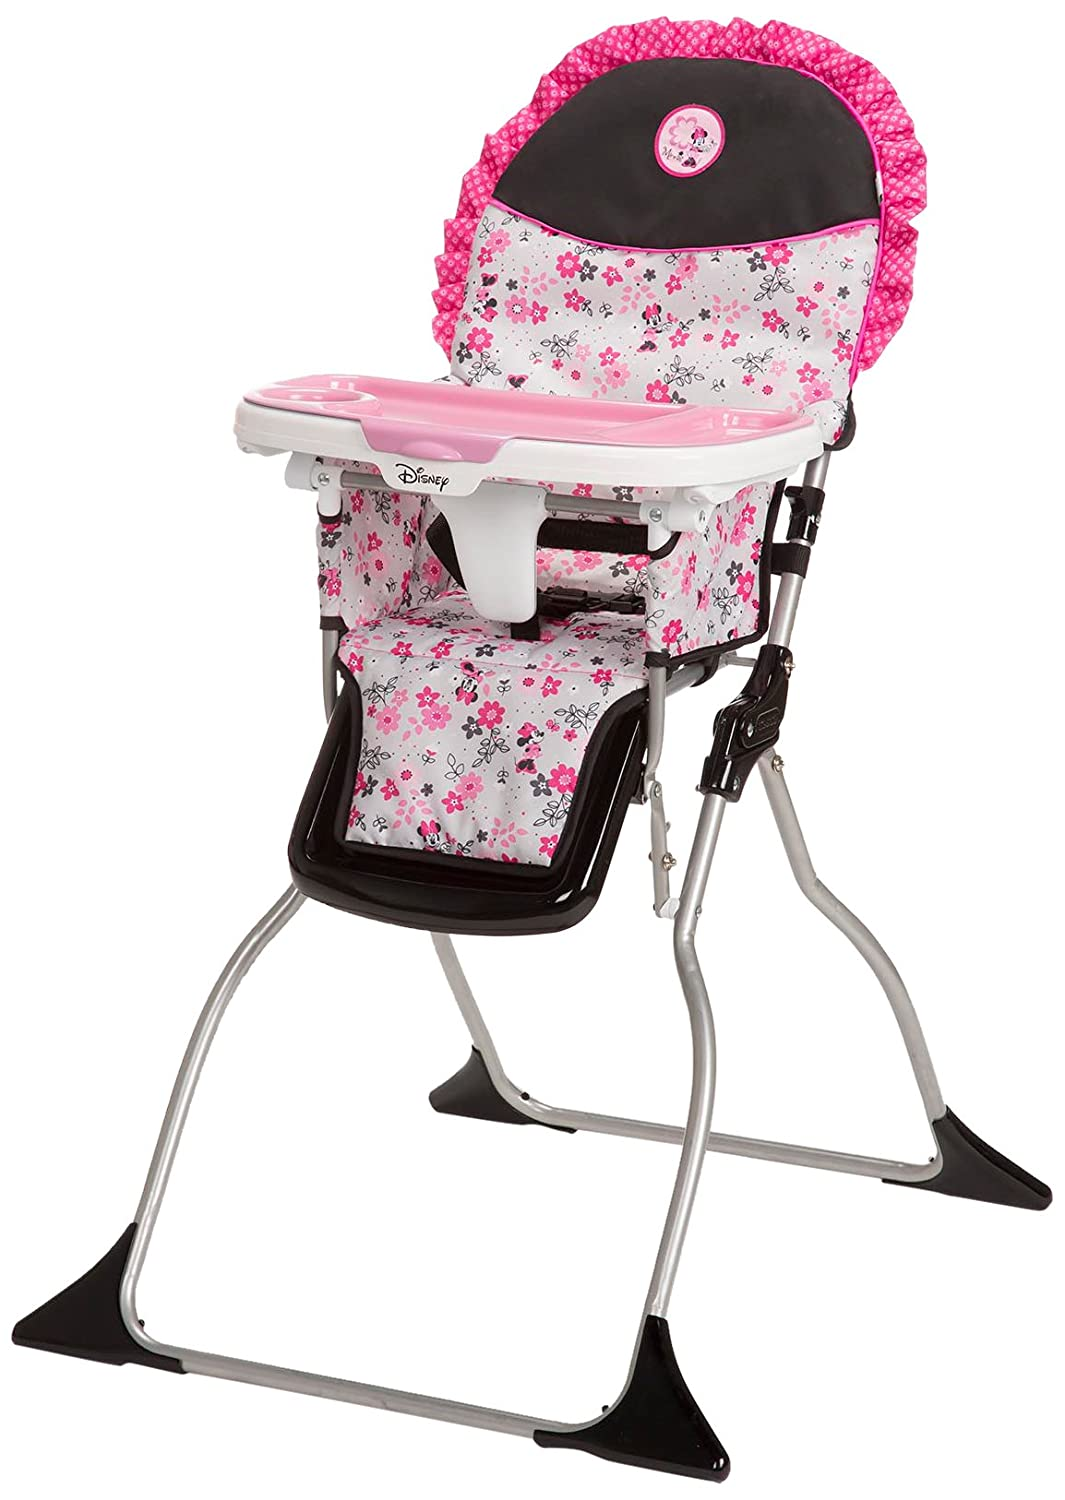 Disney Simple Fold Plus High Chair, Garden Delight, Minnie Disney Baby HC218CZR